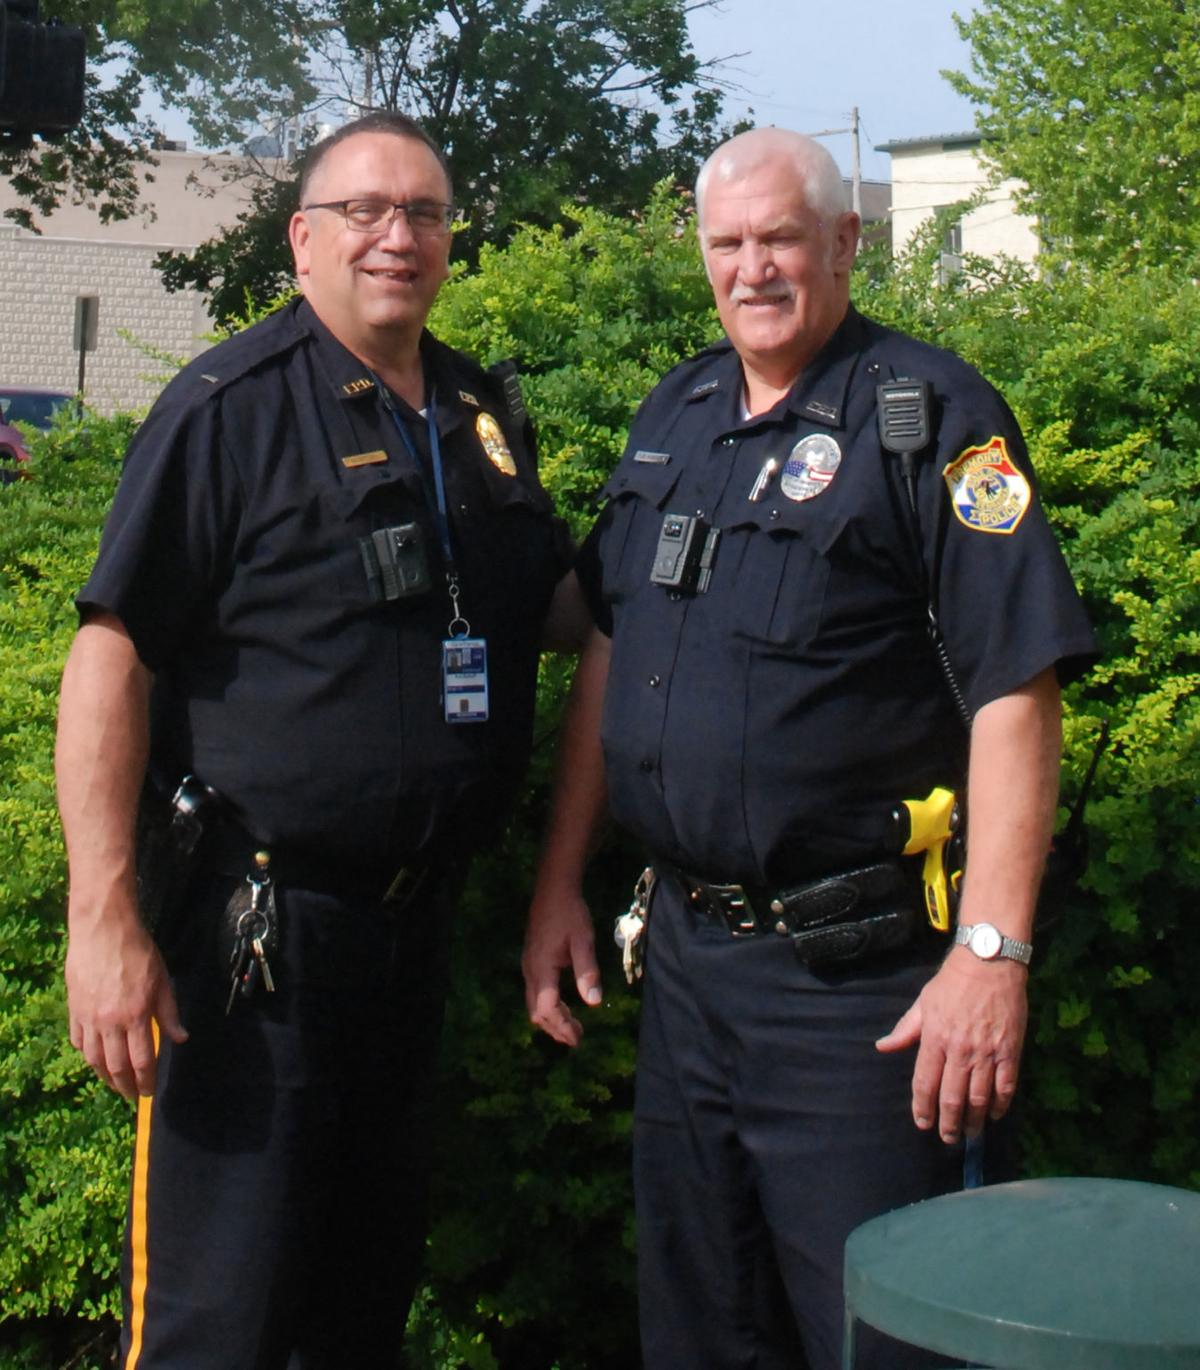 Lt and Officer Hanson near greenery